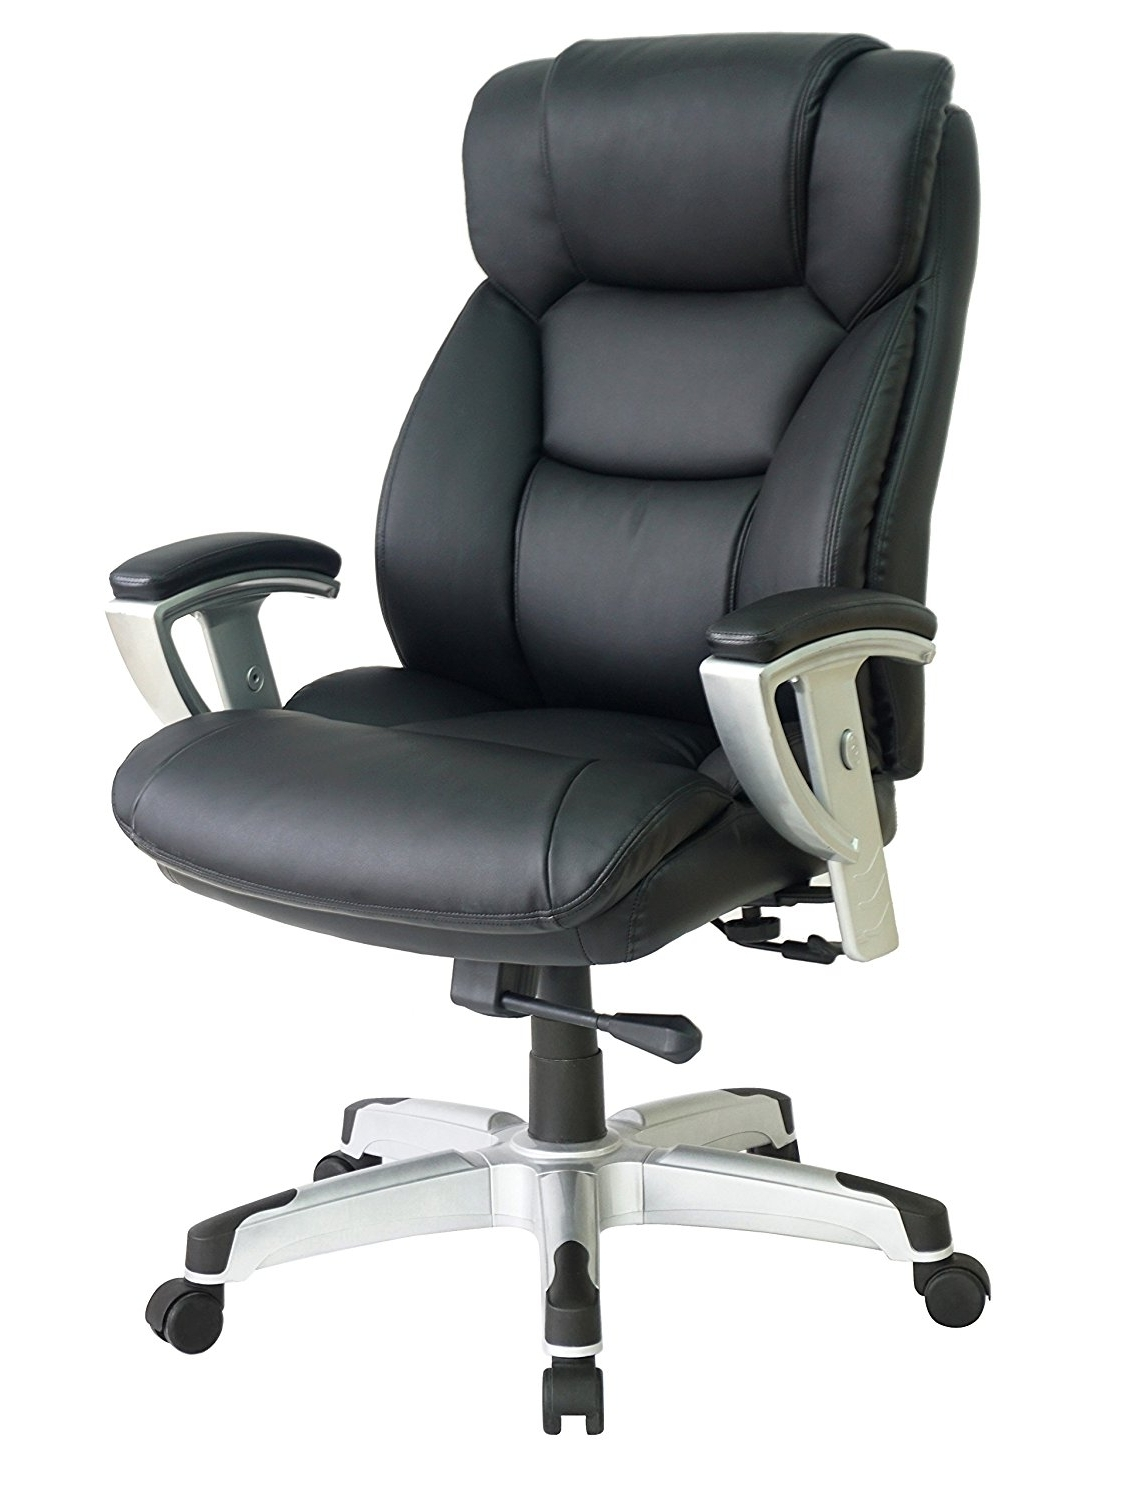 Popular 10 Big & Tall Office Chairs For Extra Large Comfort With Regard To Big And Tall Executive Office Chairs (View 13 of 20)